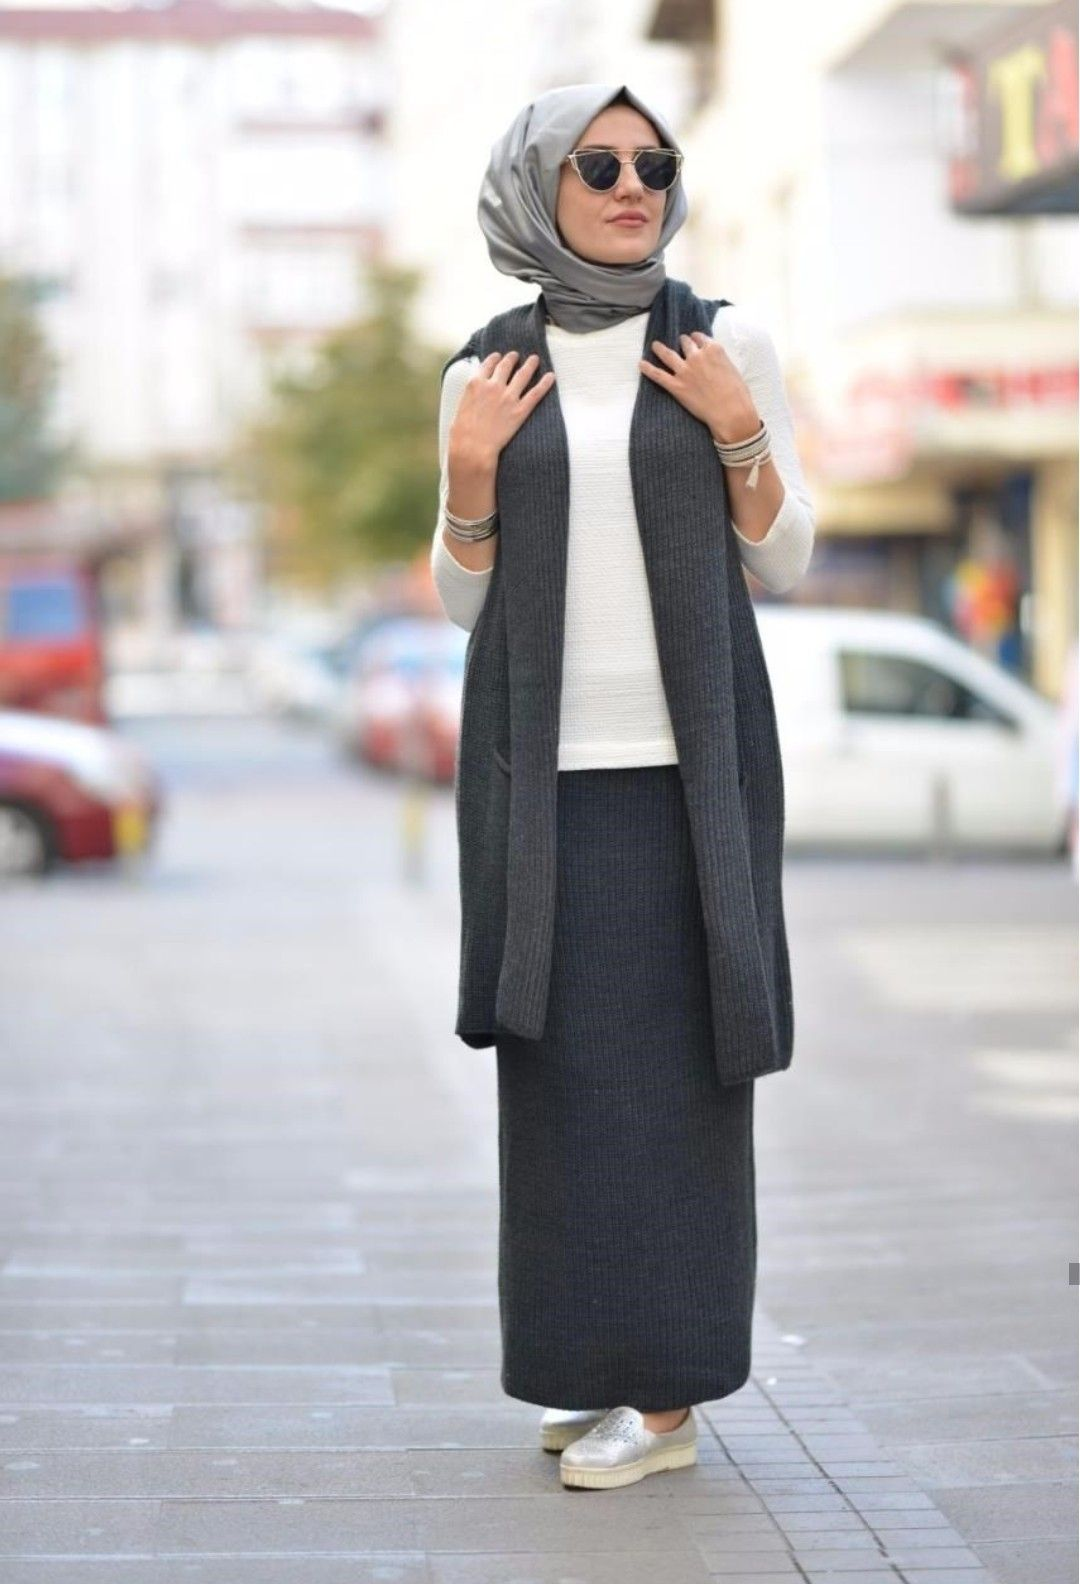 Pin by suzane on vêtements pinterest hijab outfit modest